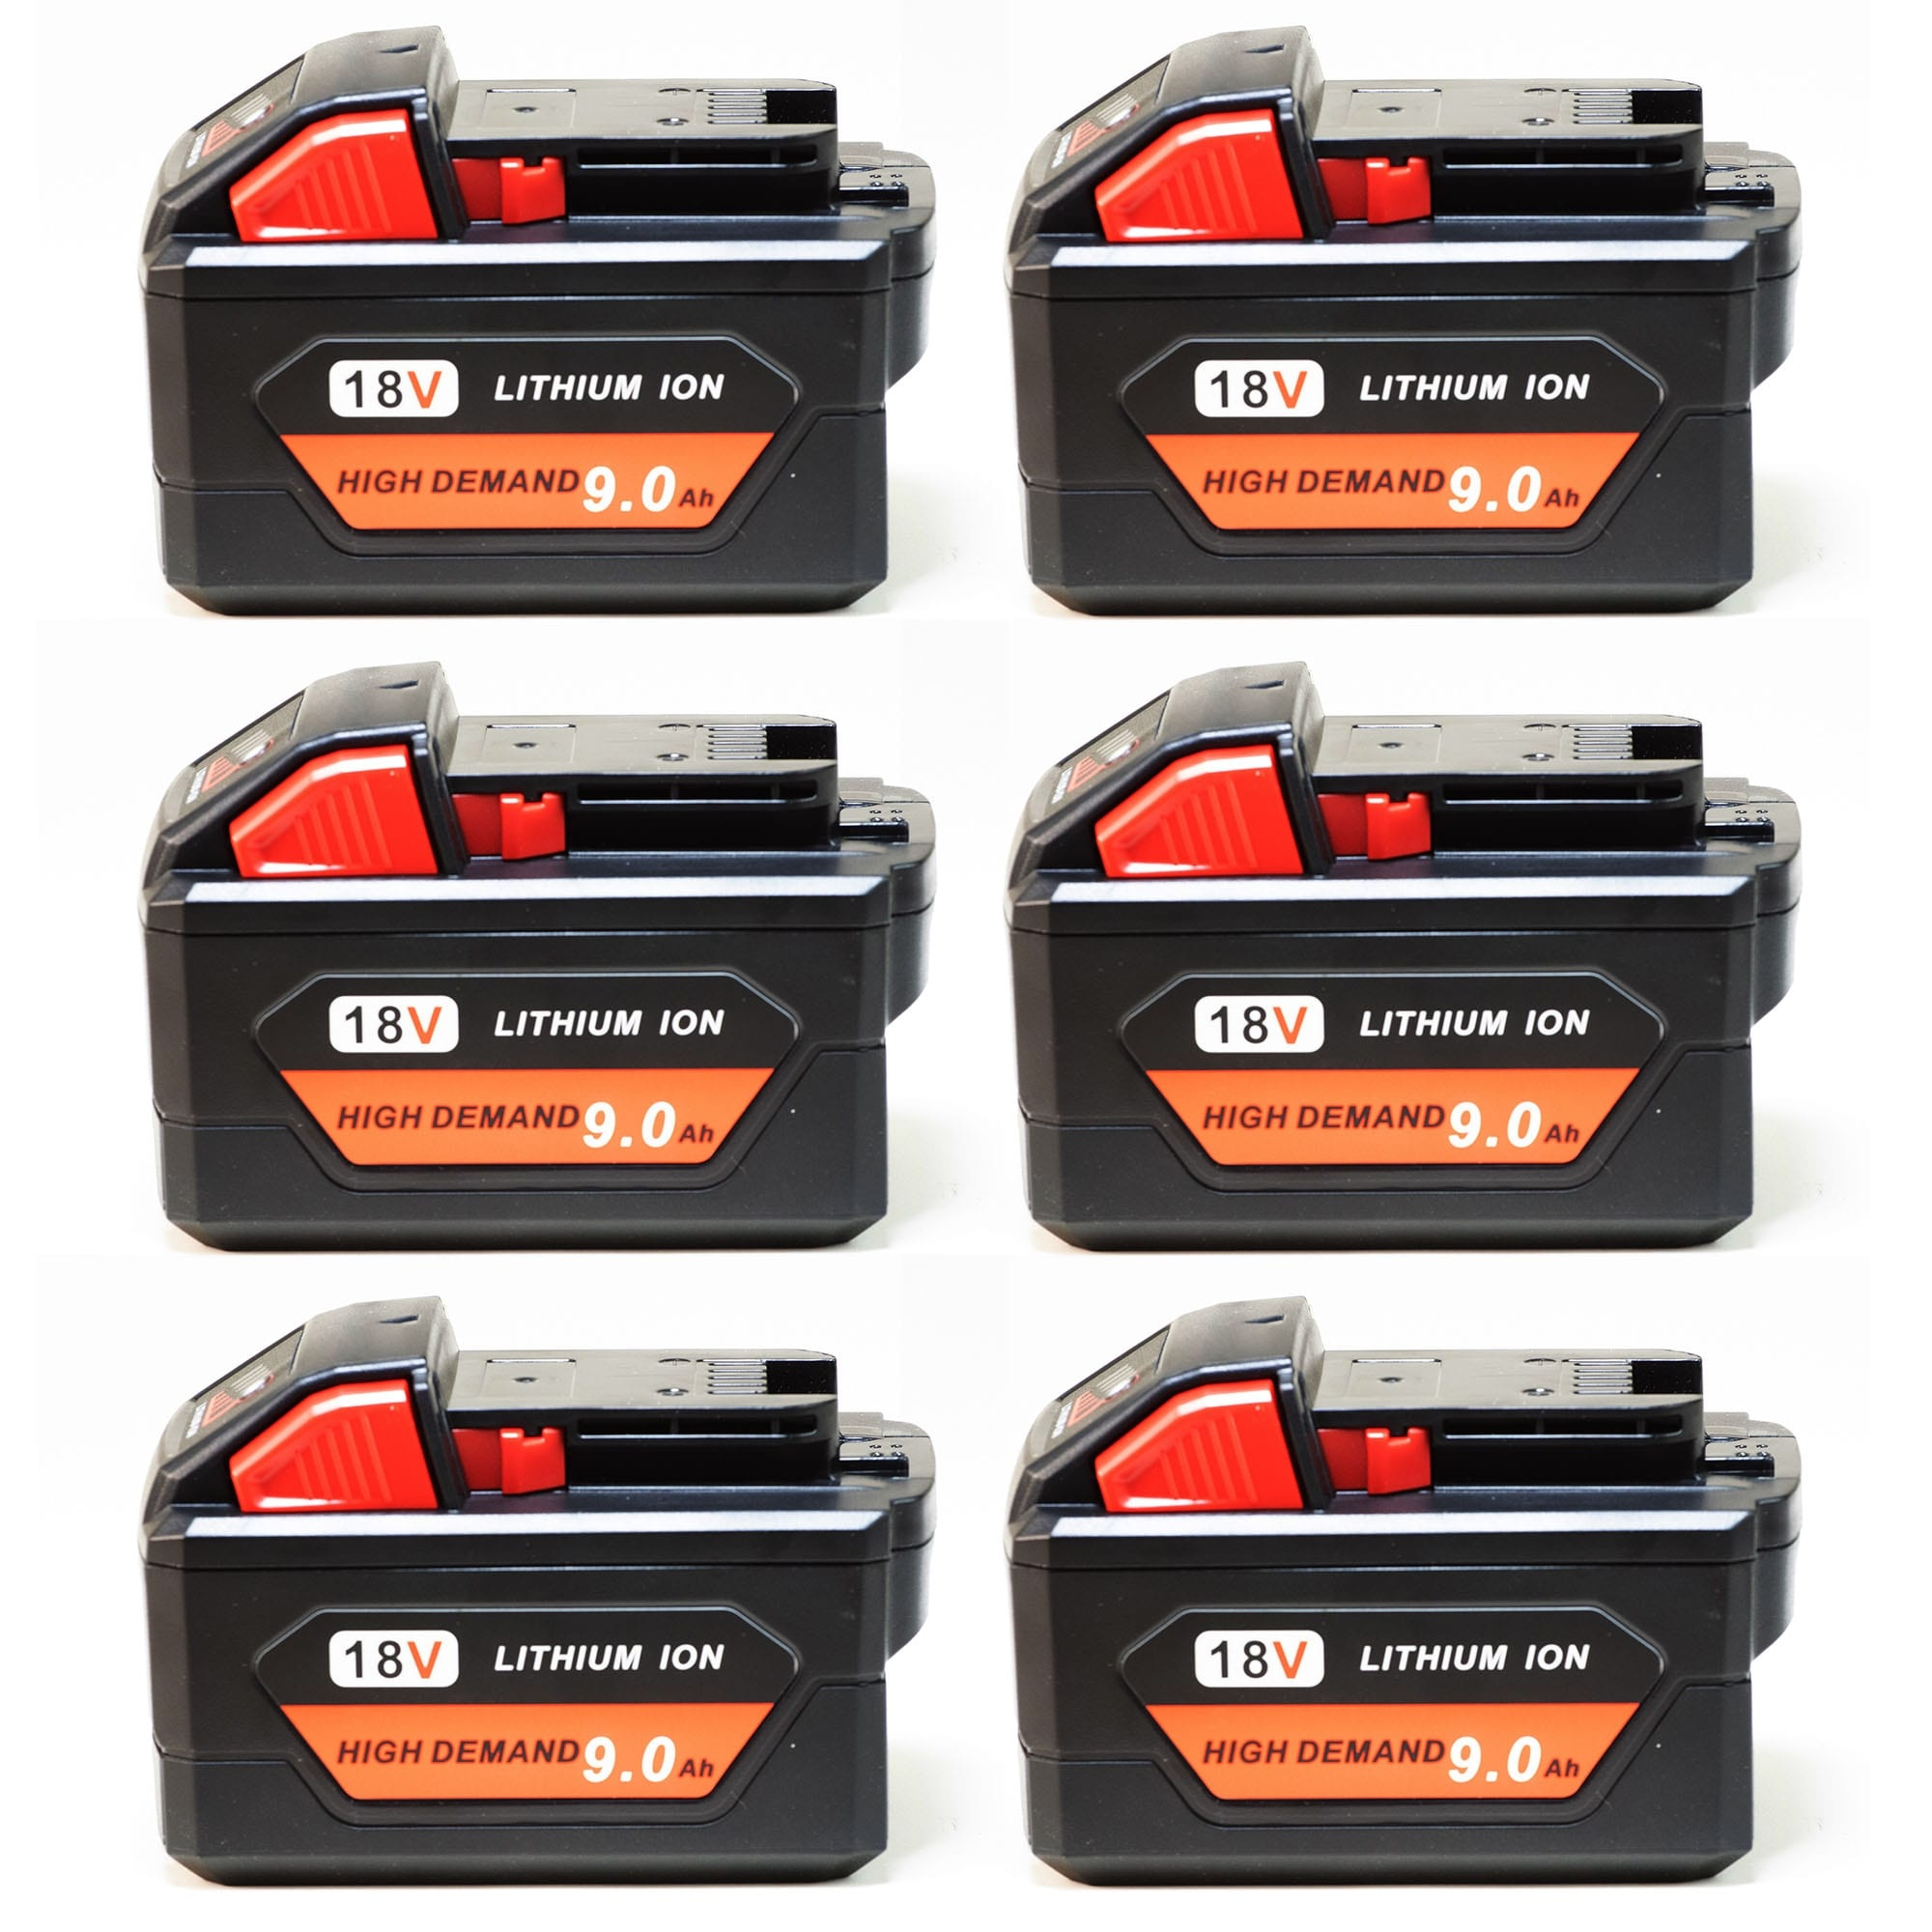 Replacement 9000mAh Battery for Milwaukee 2715-22 / 2759-20 Power Tools (6 Pk)